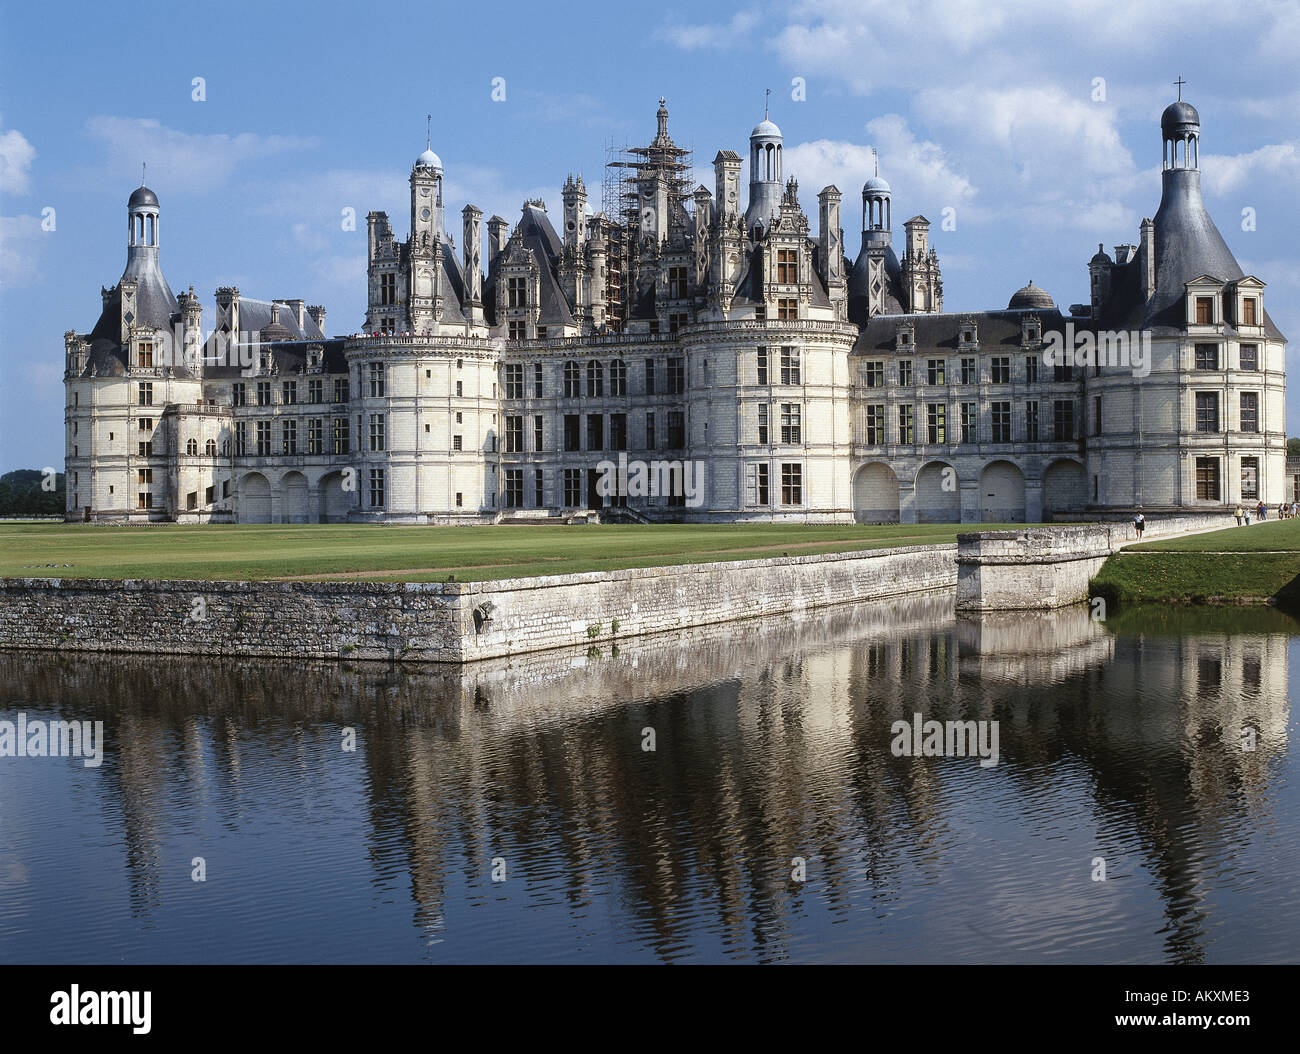 16th Century French Home - the-16th-century-french-renaissance-chateau-de-chambord-reflecting-AKXME3_Amazing 16th Century French Home - the-16th-century-french-renaissance-chateau-de-chambord-reflecting-AKXME3  Trends_13614.jpg